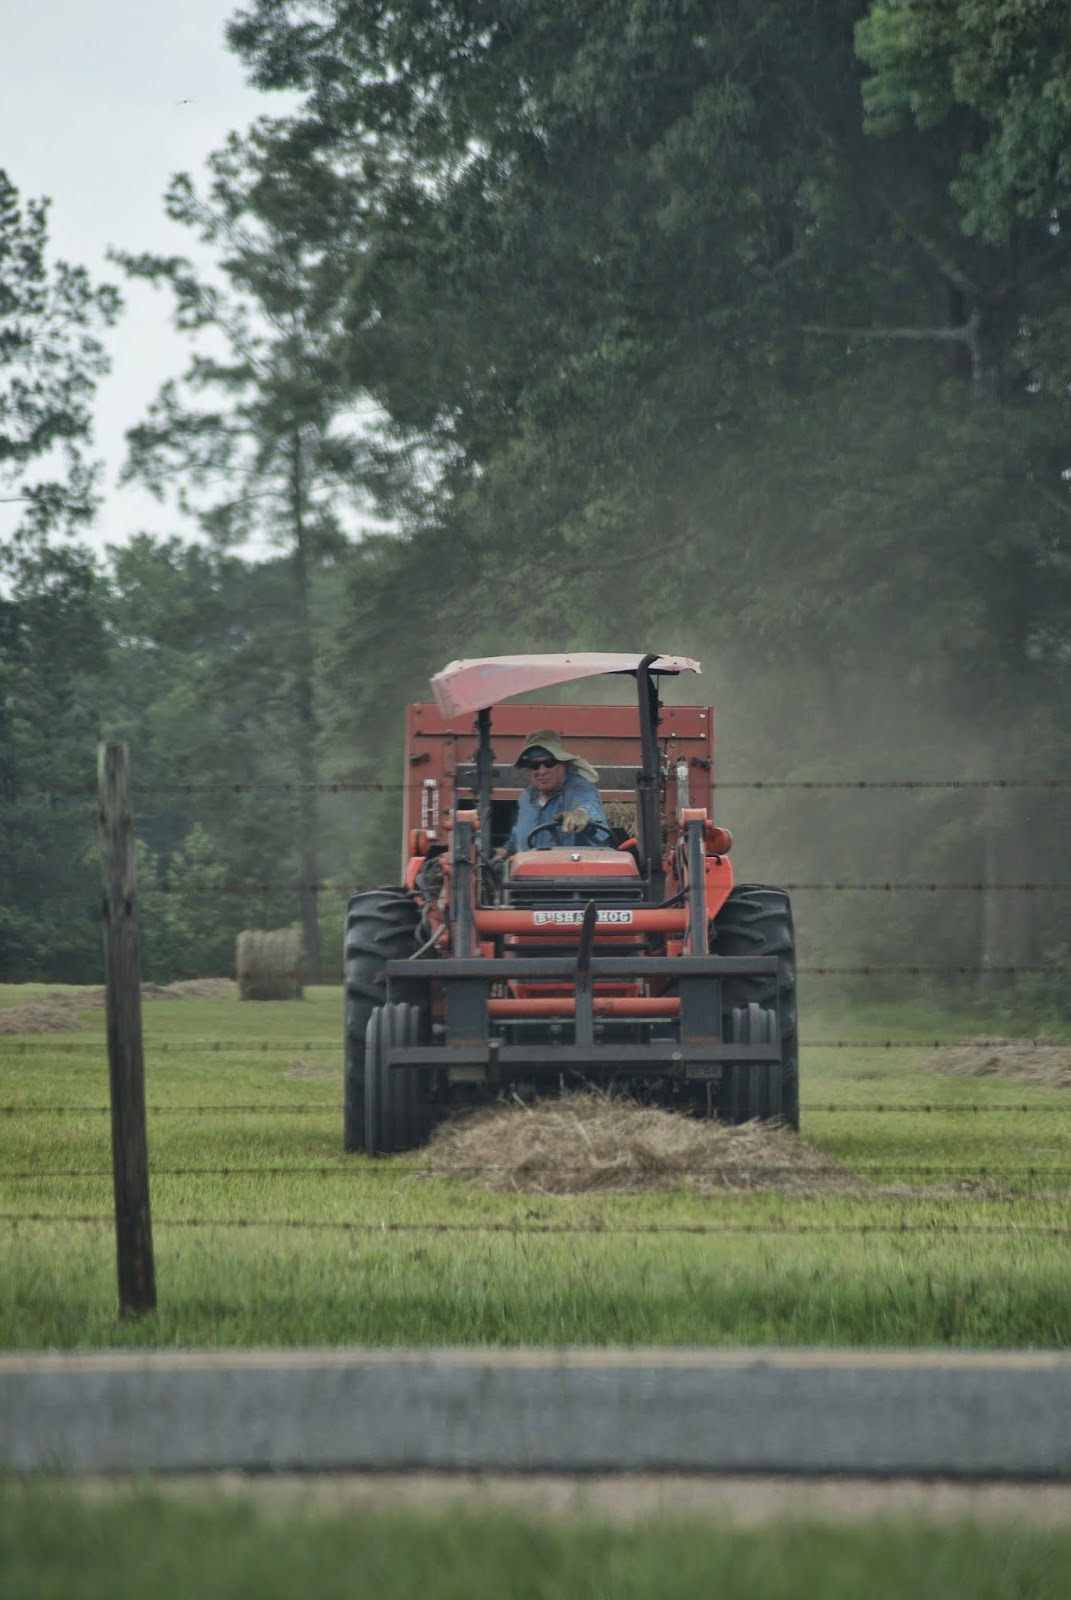 Hay bales and tractors in Louisiana